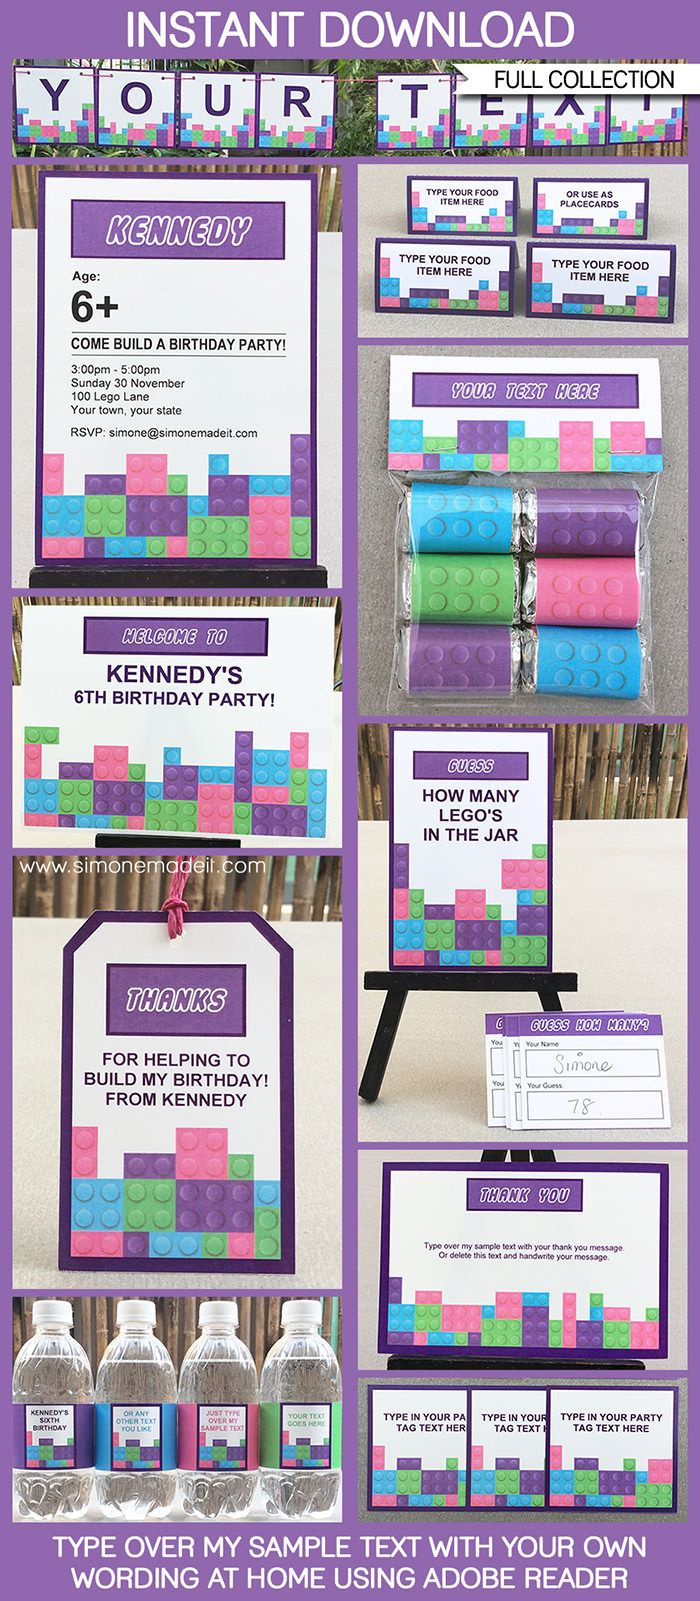 Lego Friends Party Printables, Invitations & Decorations | Birthday Party Theme templates